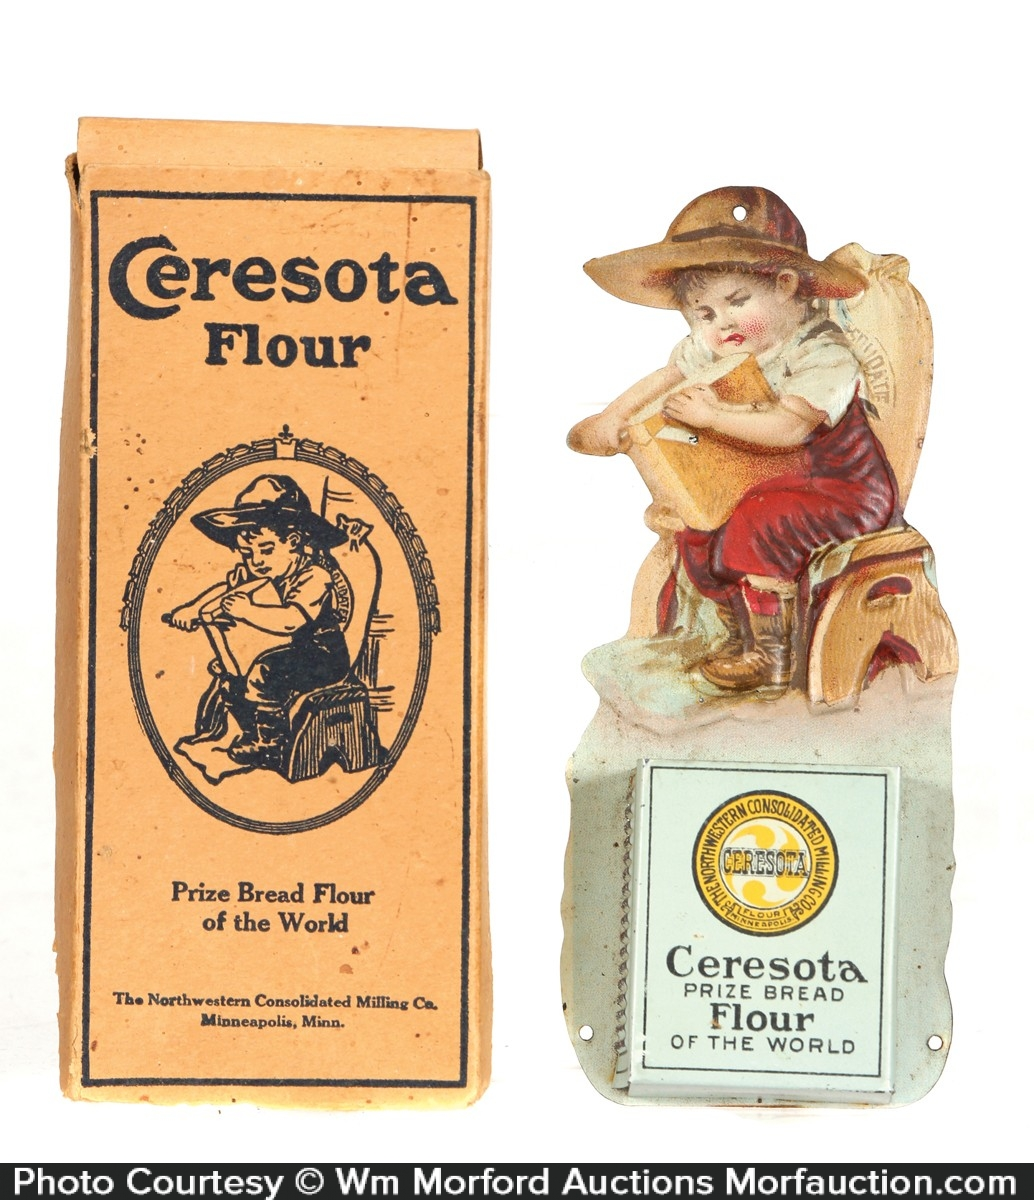 Ceresota Flour Match Holder